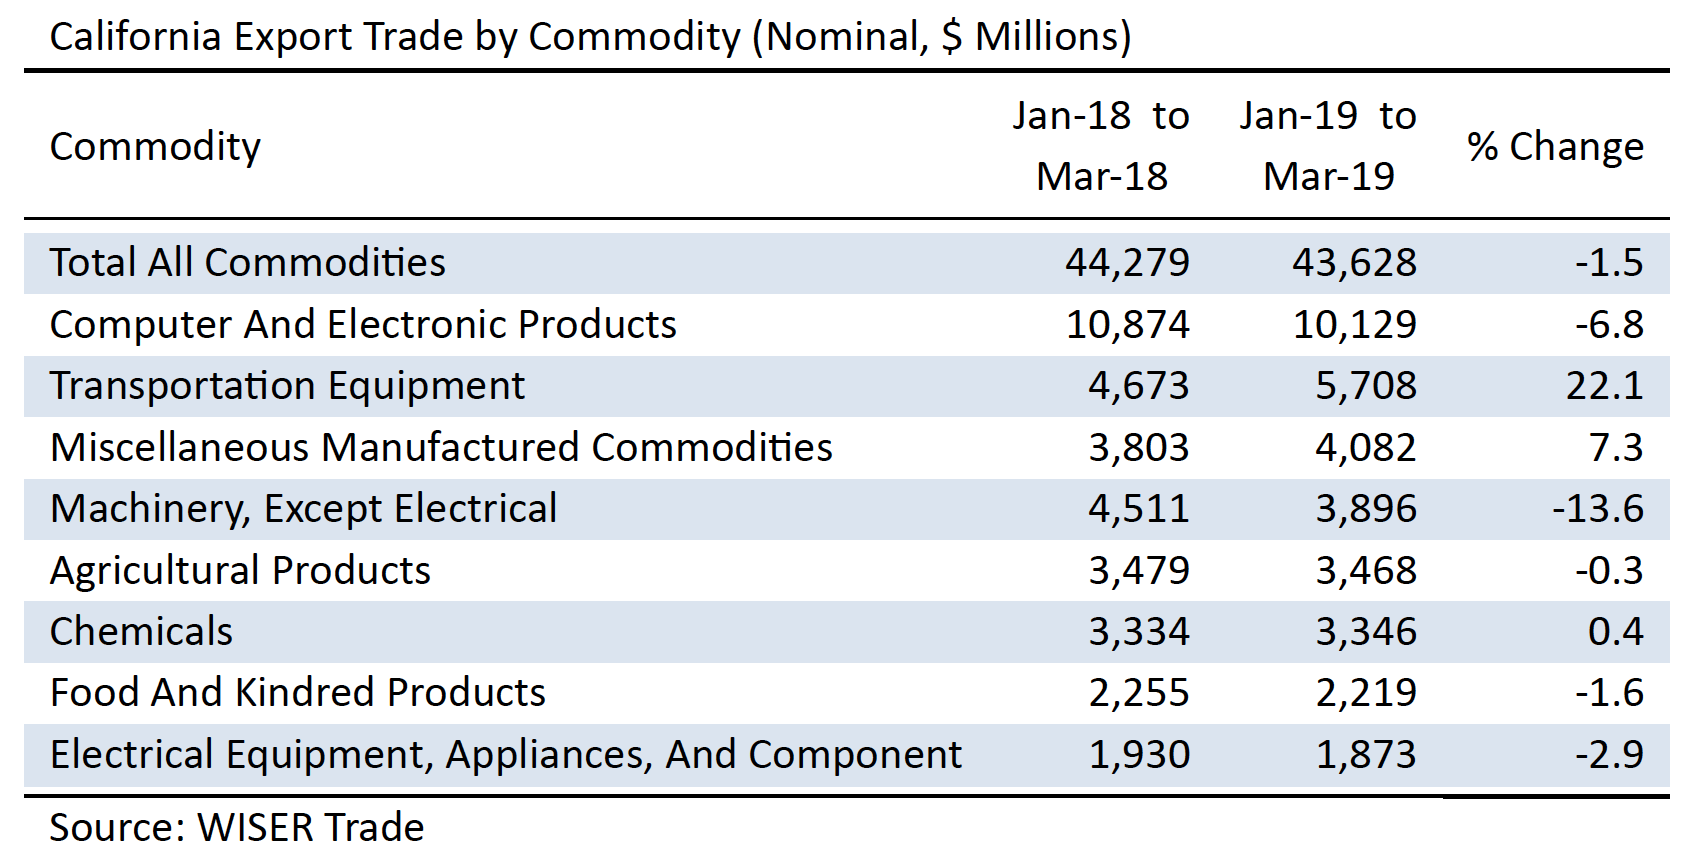 California Export Trade by Commodity